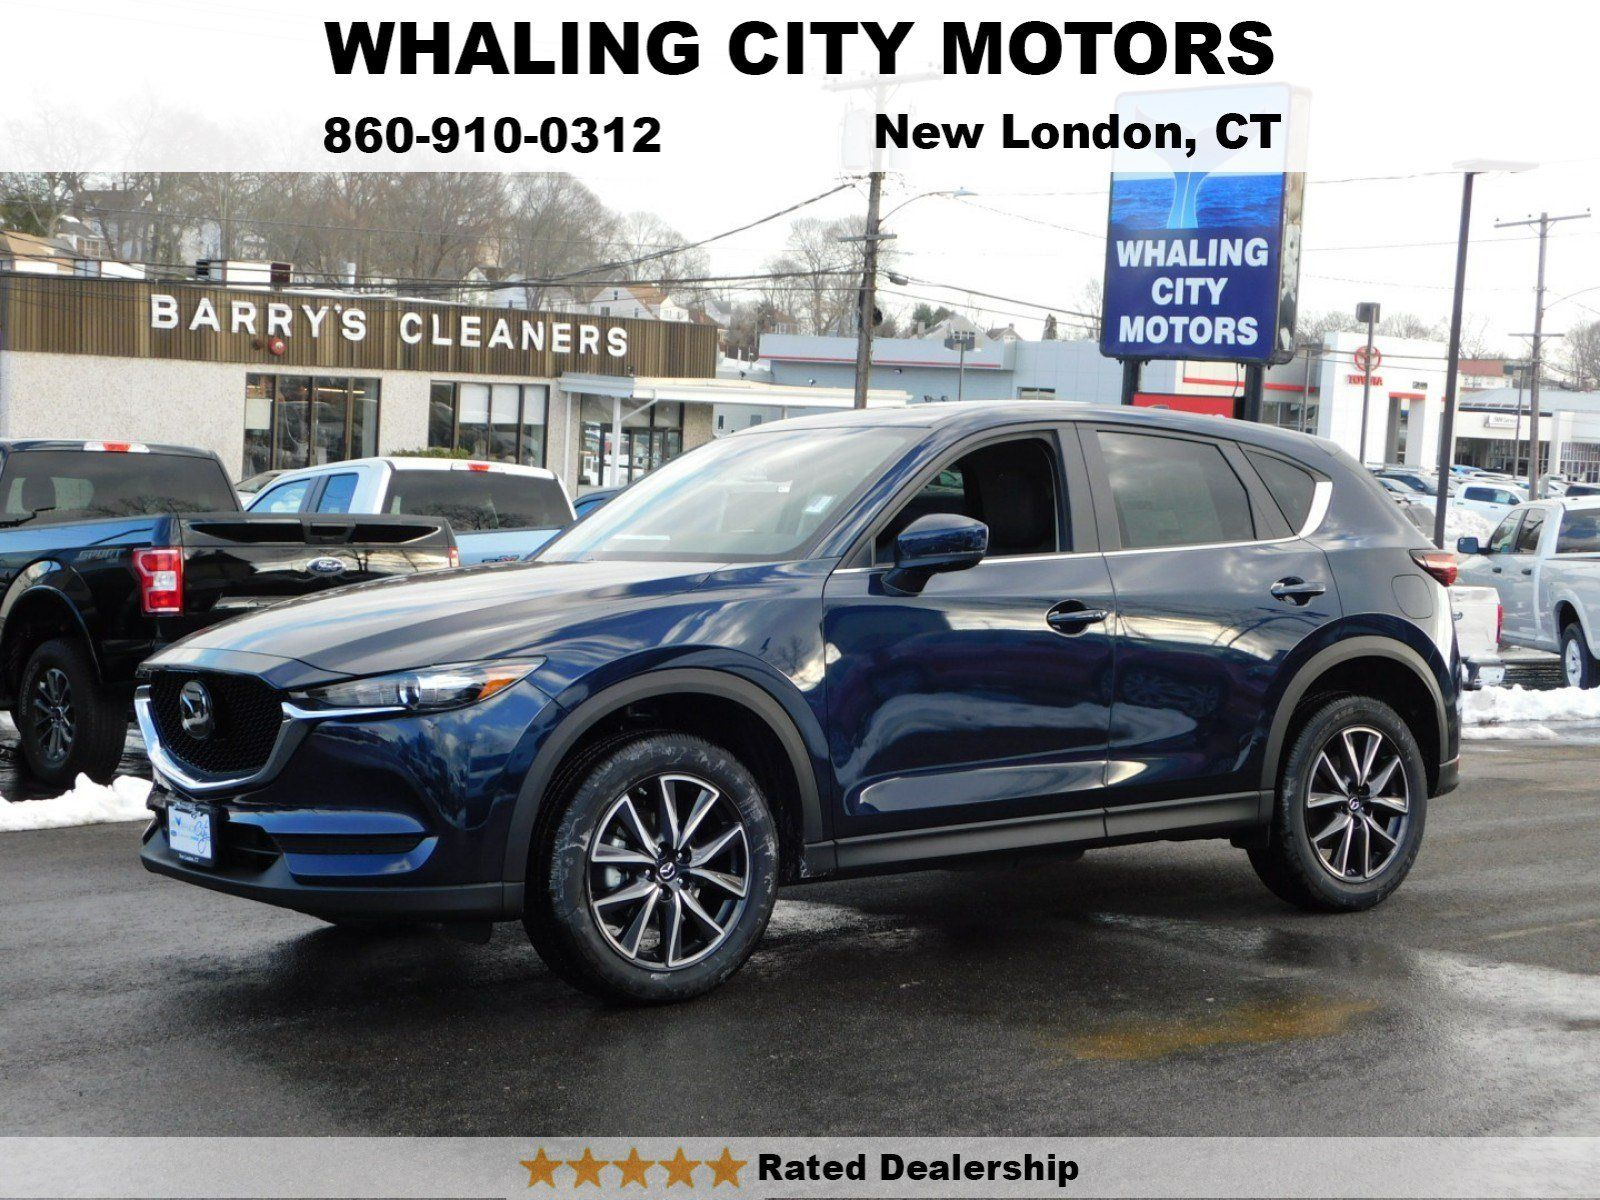 A 2018 mazda cx 5 touring in deep crystal blue picture taken on whaling citys truck lot located at 475 broad street new london ct